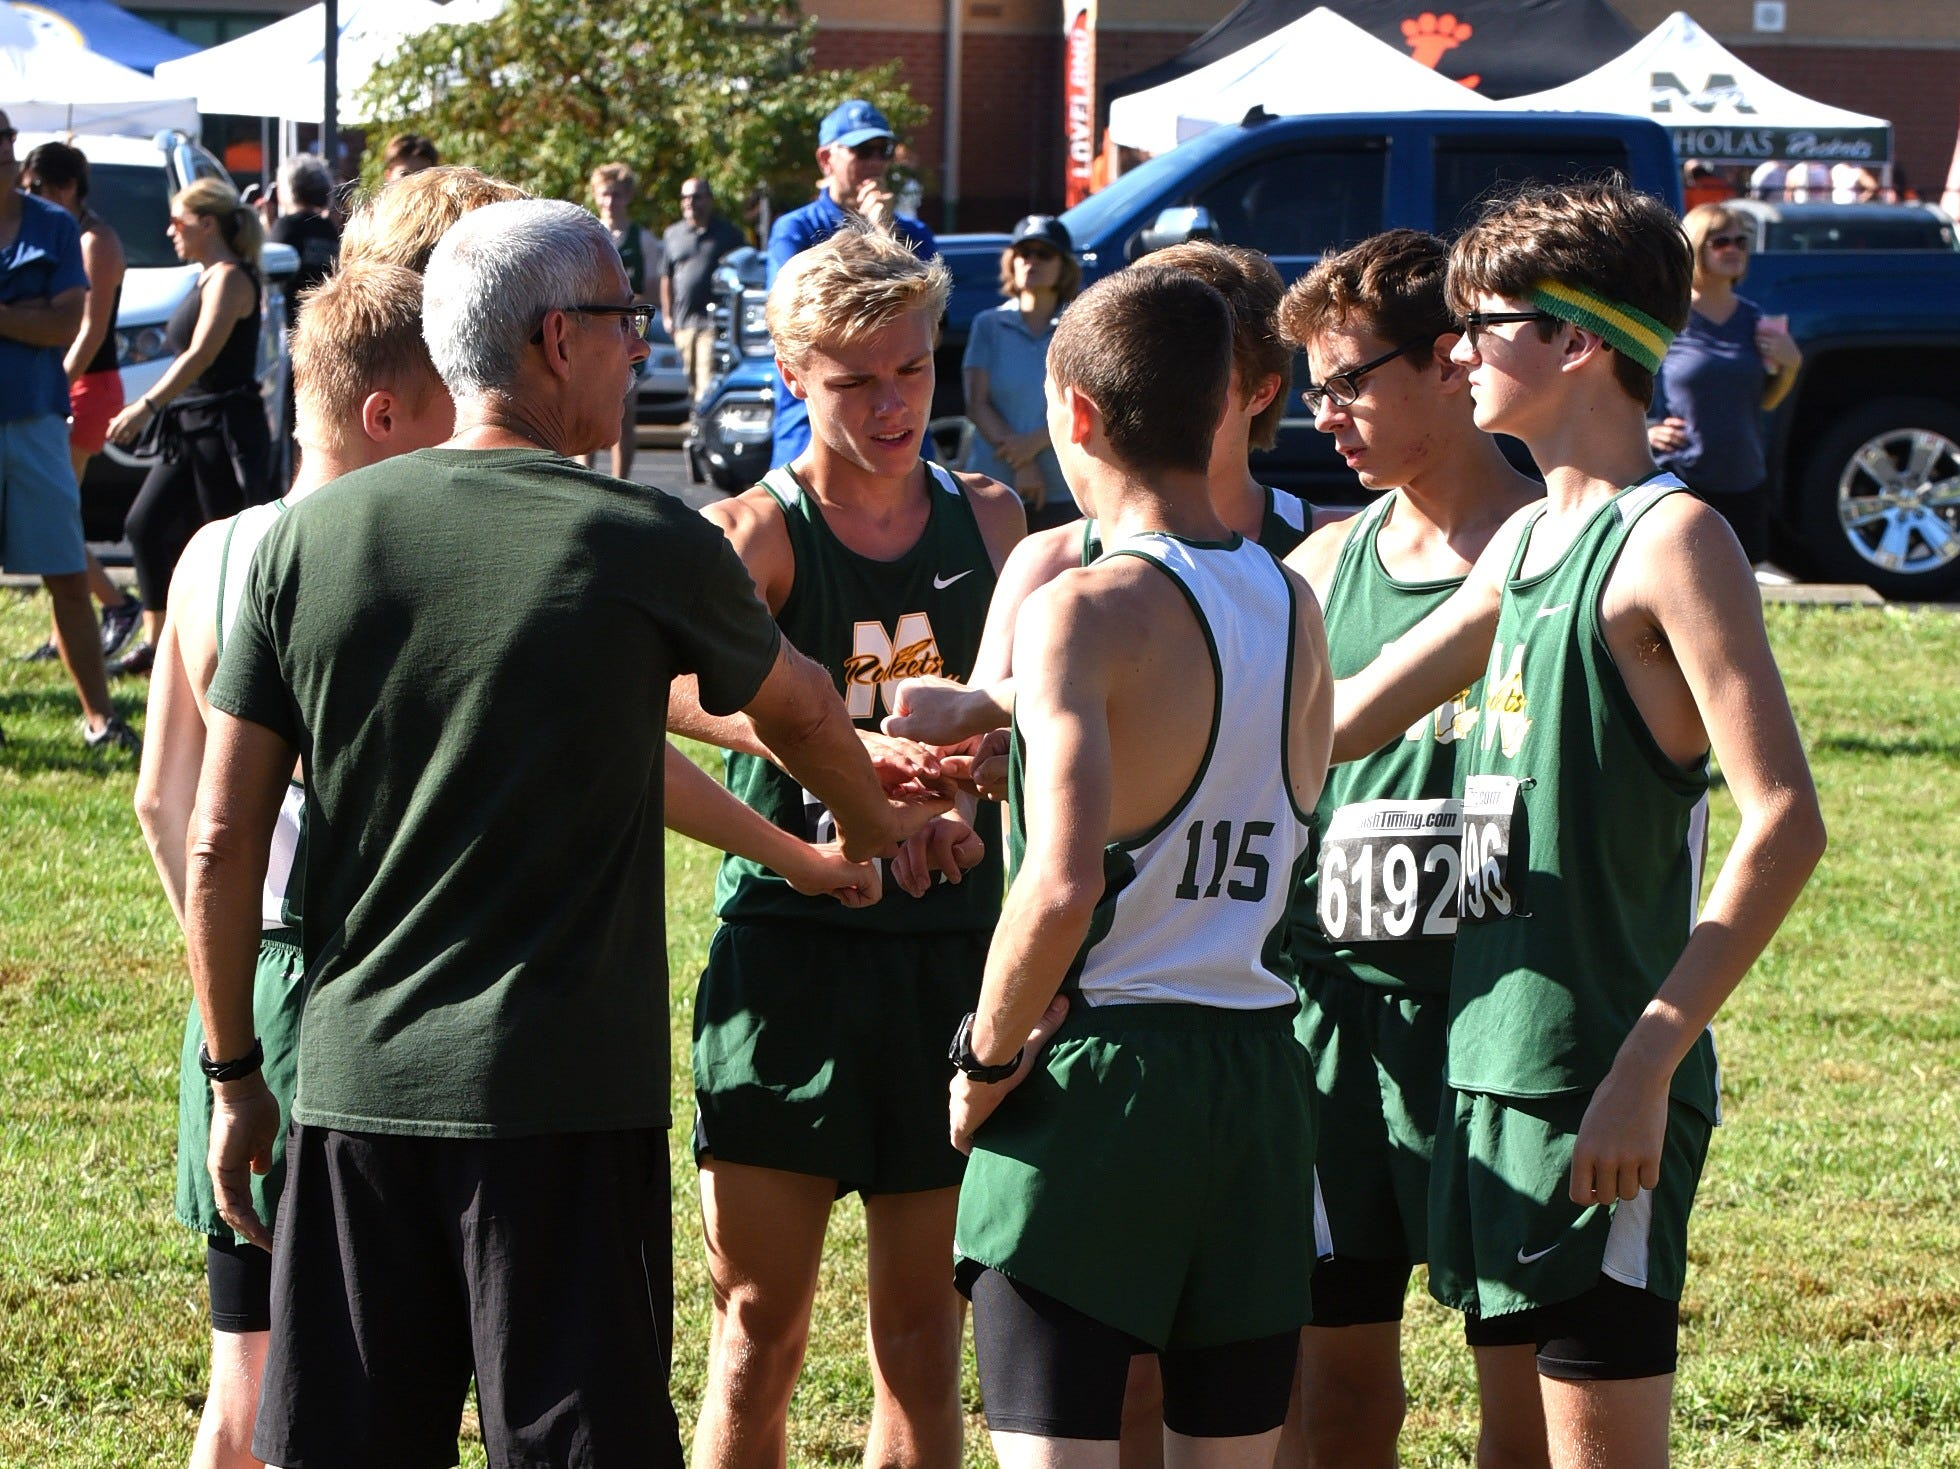 McNicholas runners huddle up prior to the boys varsity 5K race at the 2018 Milford Cross Country Invitational, Sept. 15, 2018.